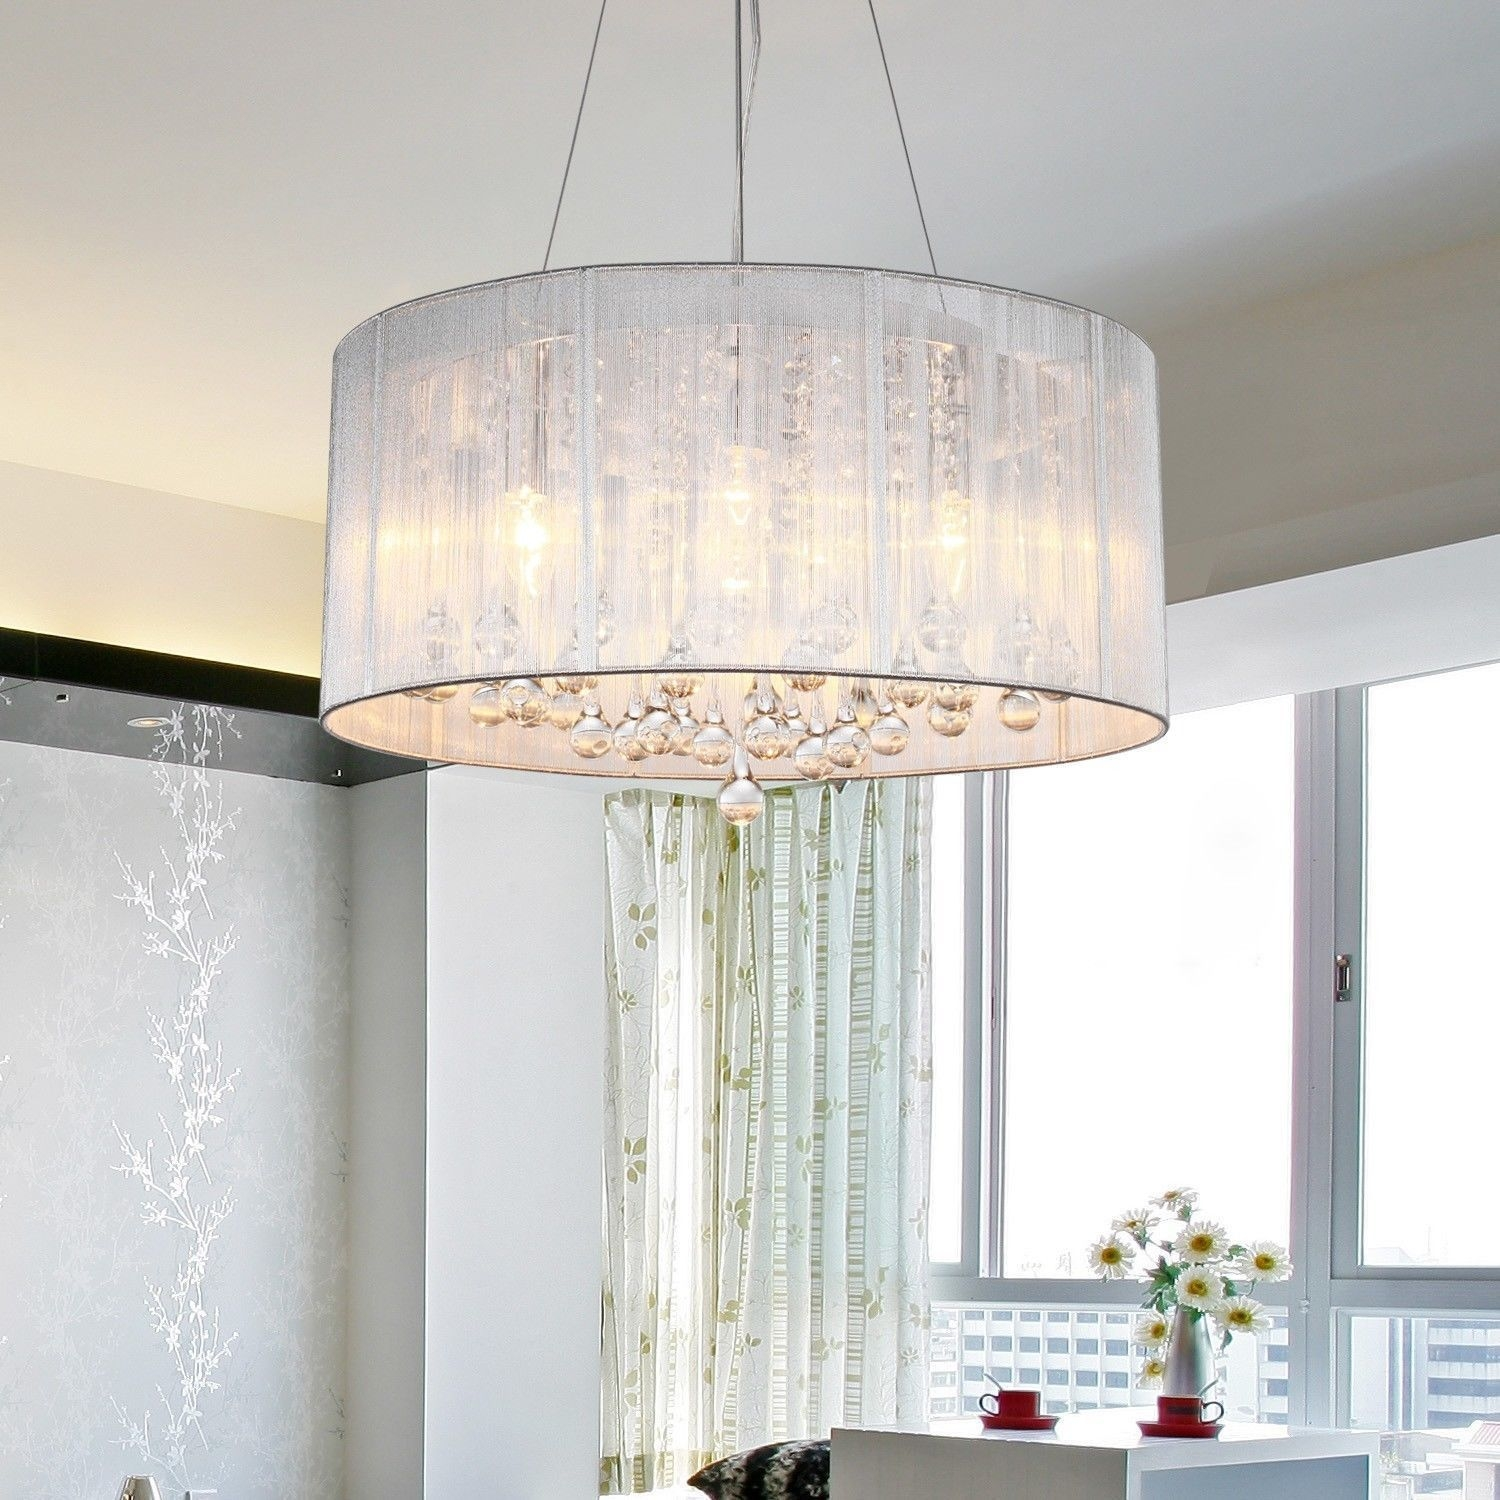 Very Awesome Lamp Shade Chandelier Best Home Decor Inspirations For Lampshades For Chandeliers (Image 23 of 25)